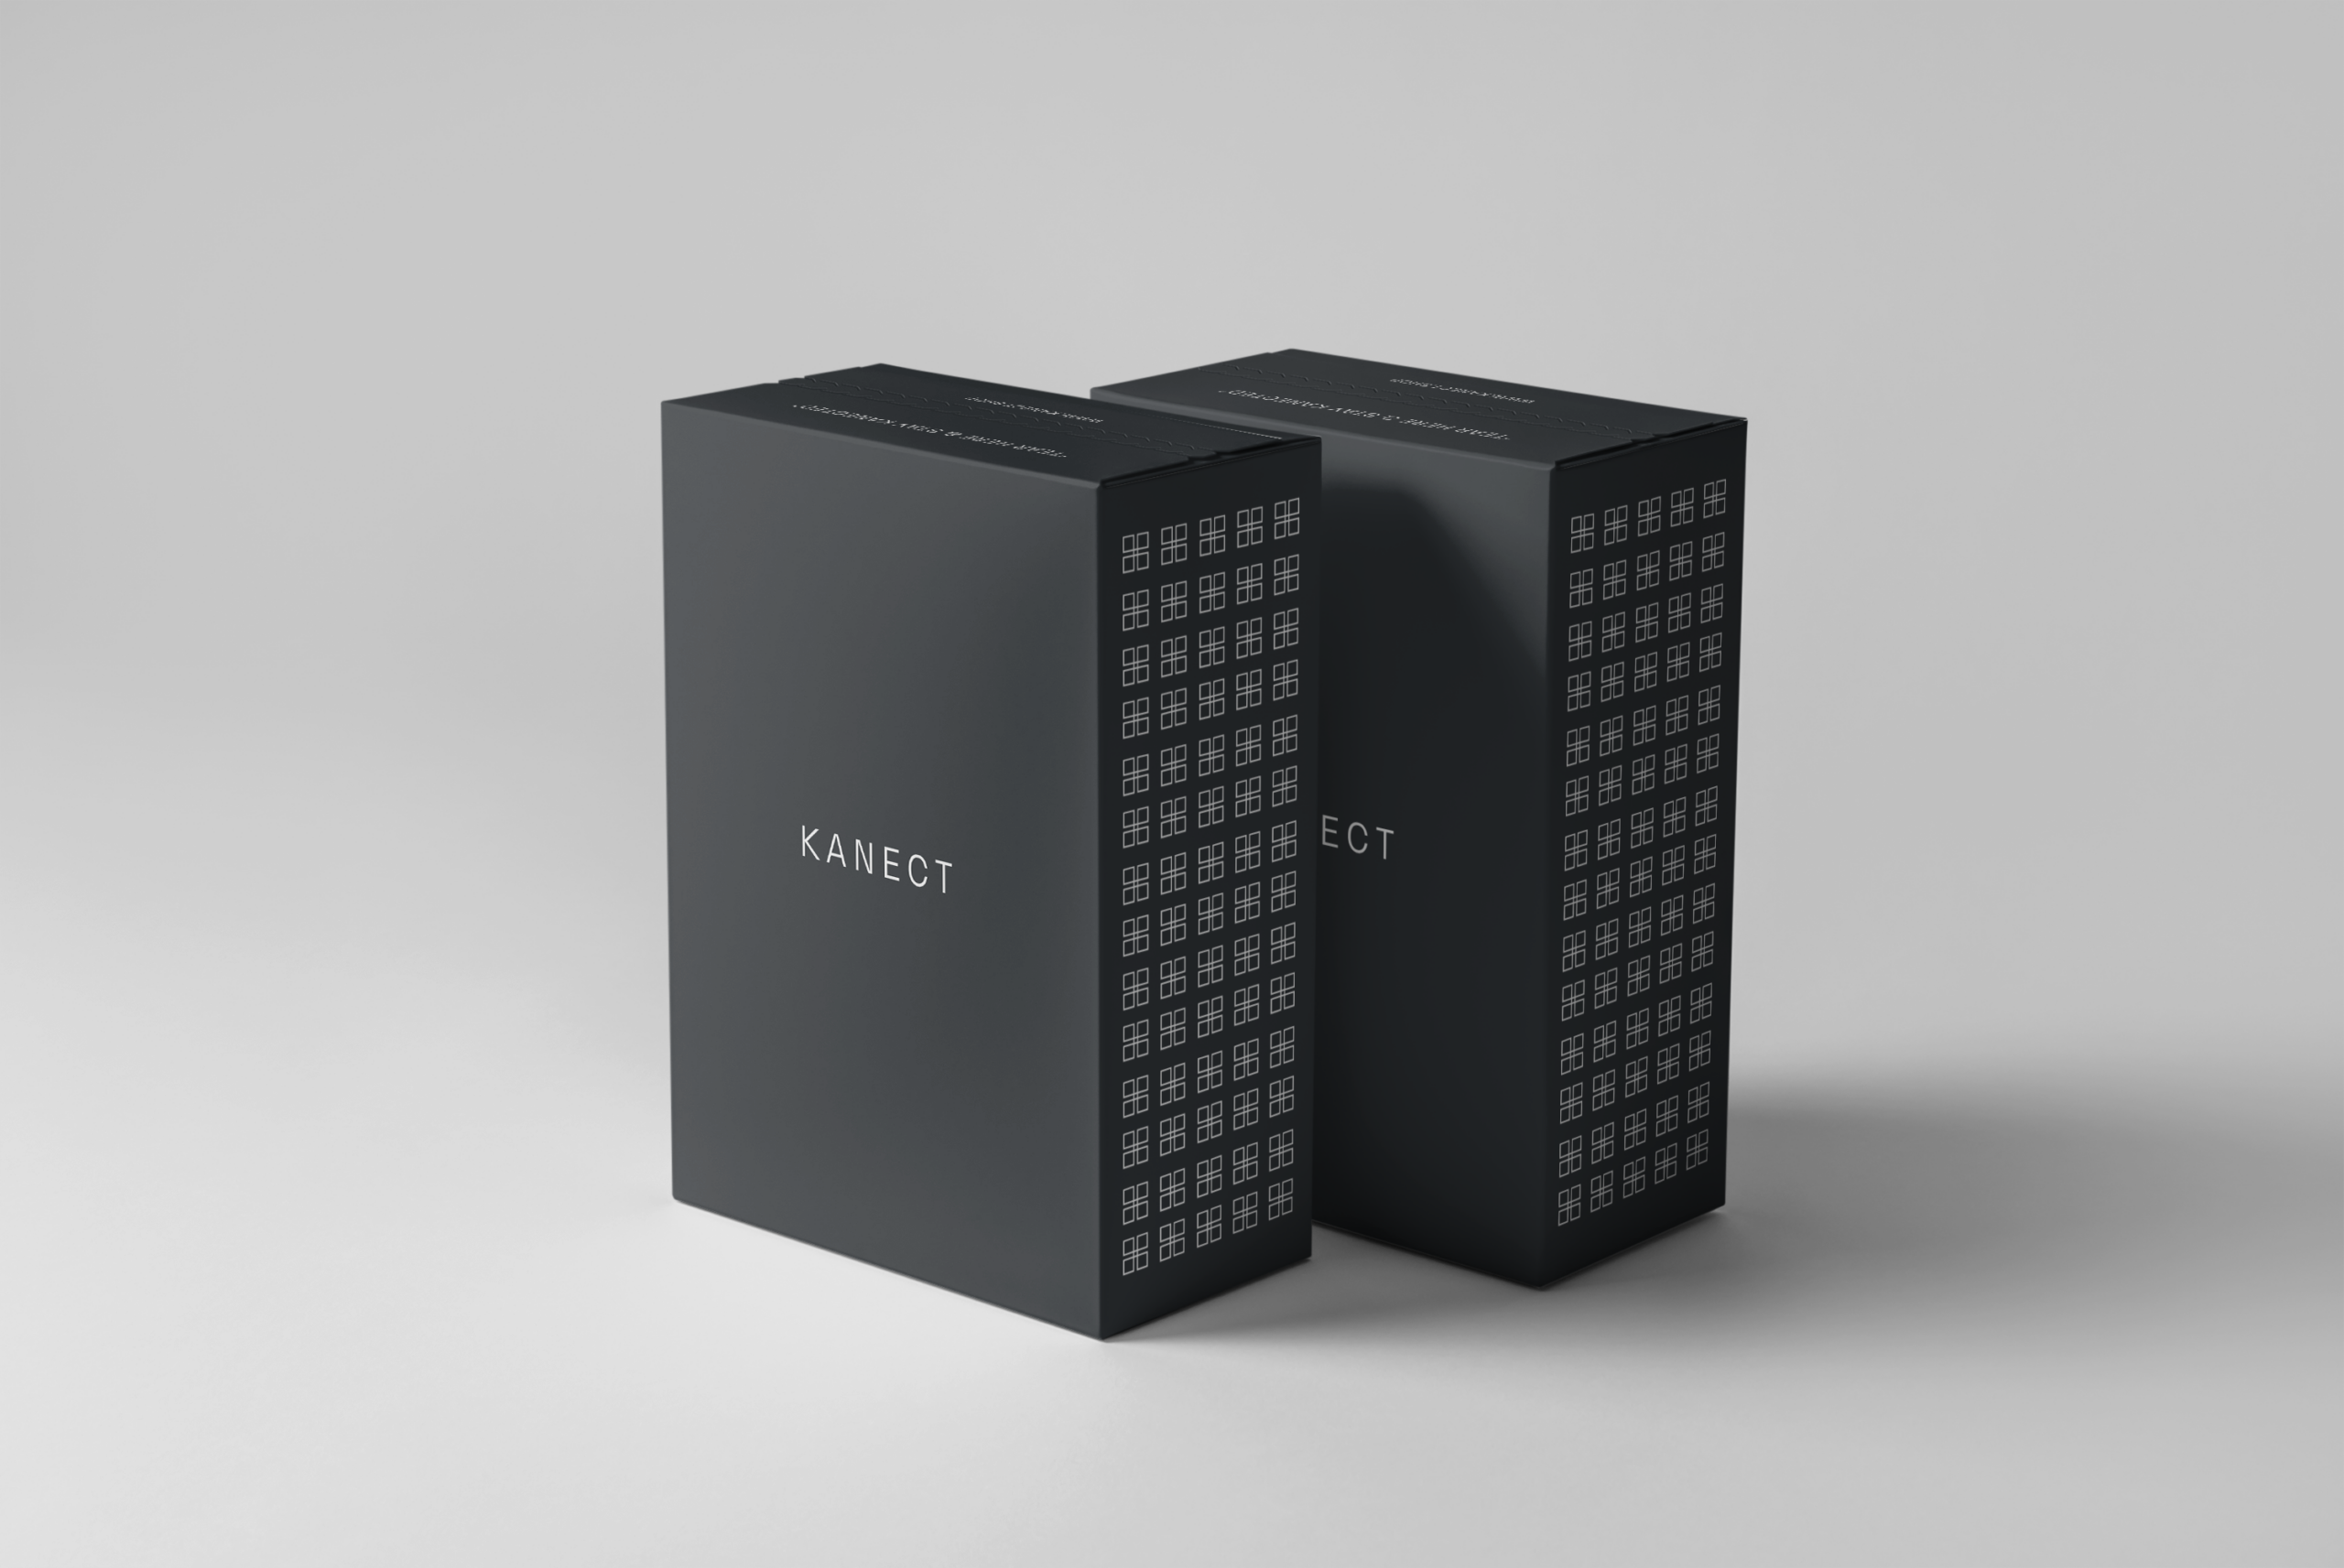 Black Clothing Box Design created by Ace Digital for Kanect Clothing